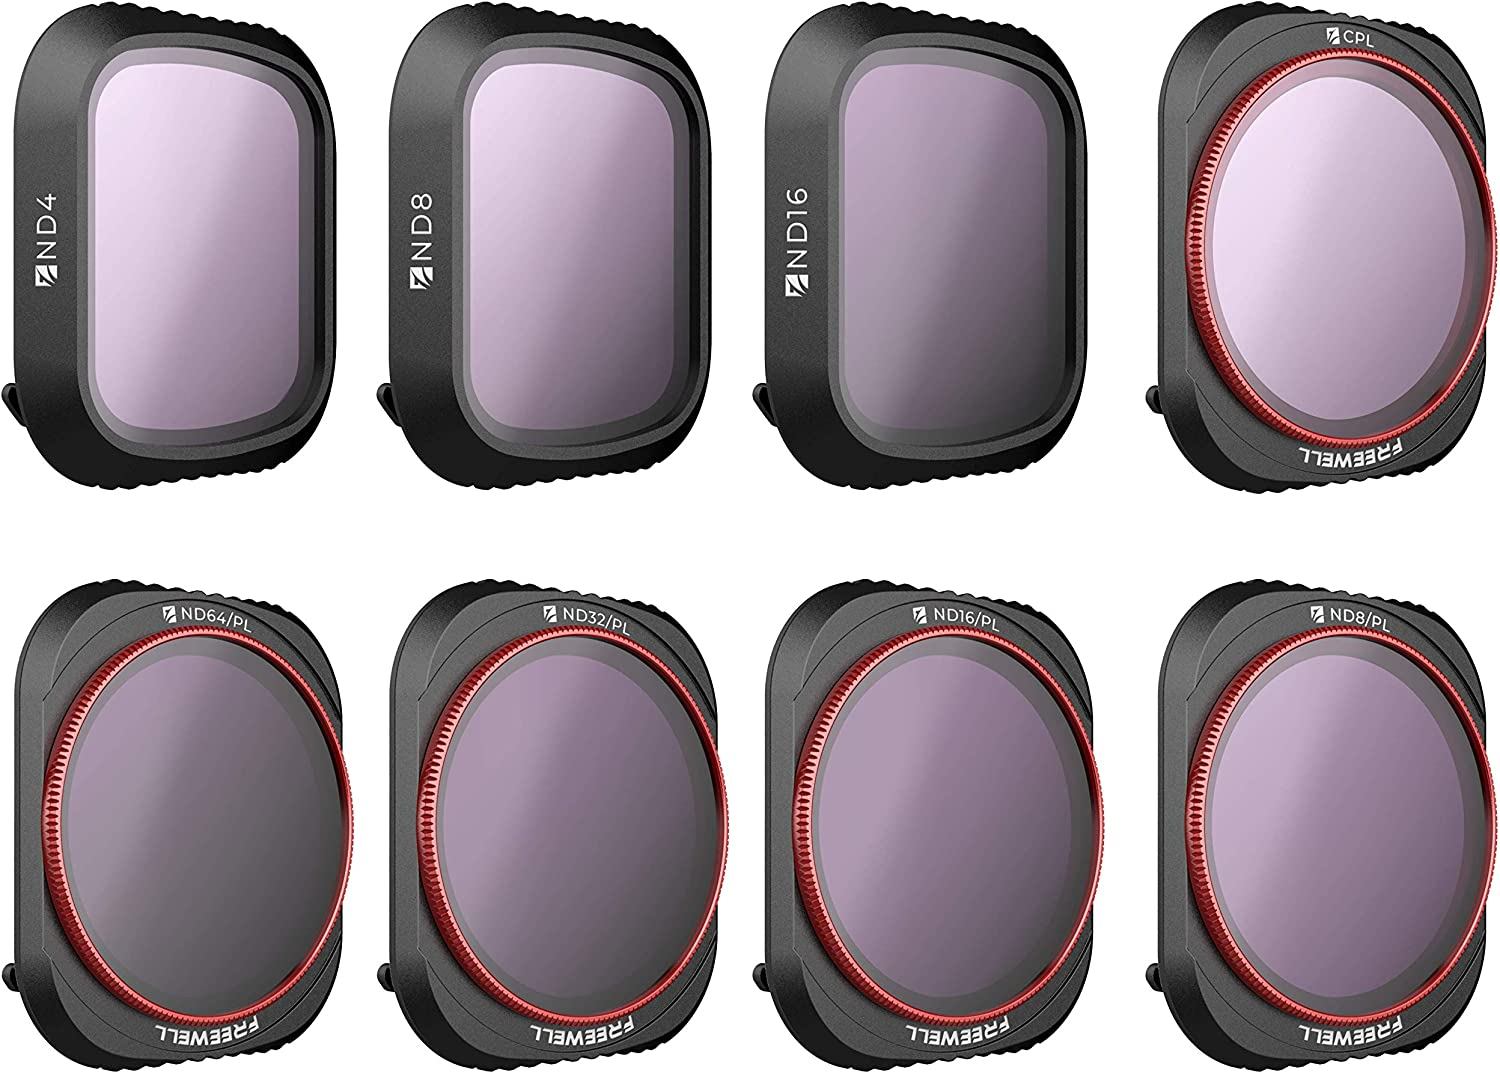 Freewell All Day 5 ☆ popular – 4K Series ND8 C Special price for a limited time 8Pack ND4 ND16